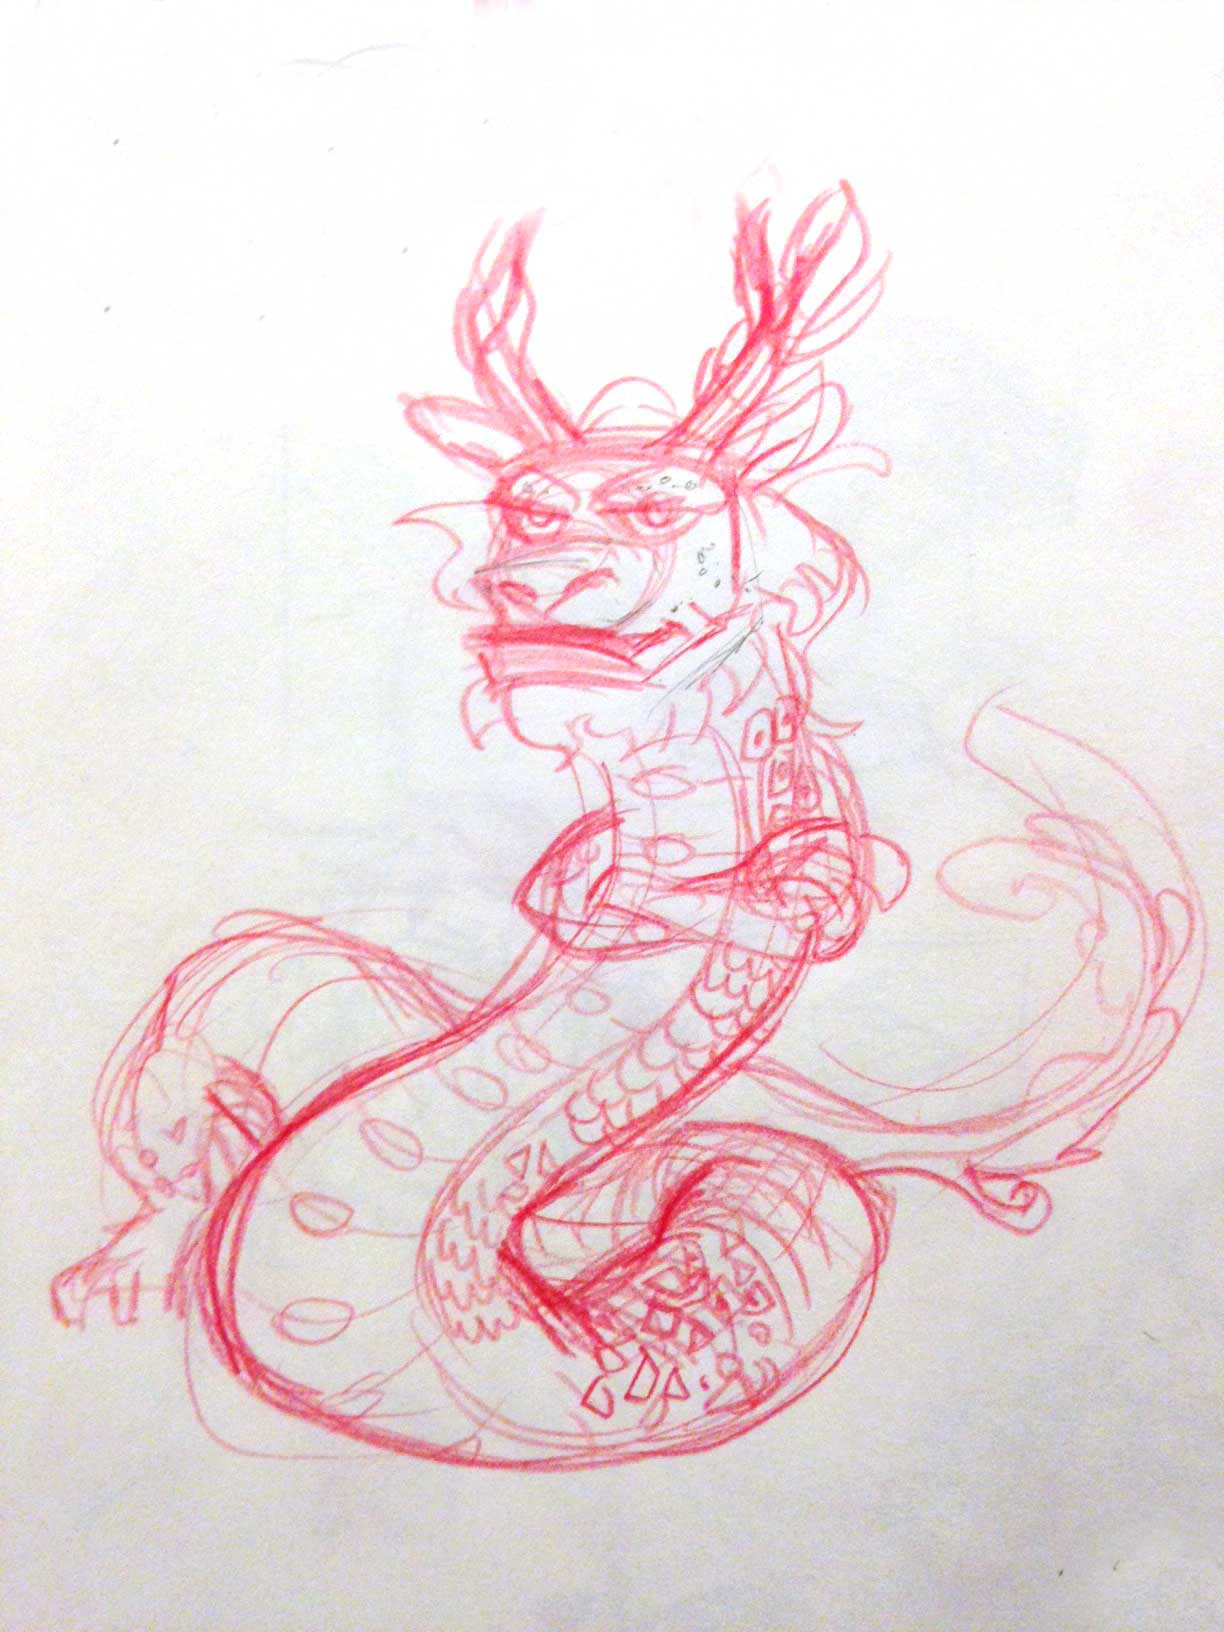 Designed this dragon character for a group comic. Done in red col-erase pencil.